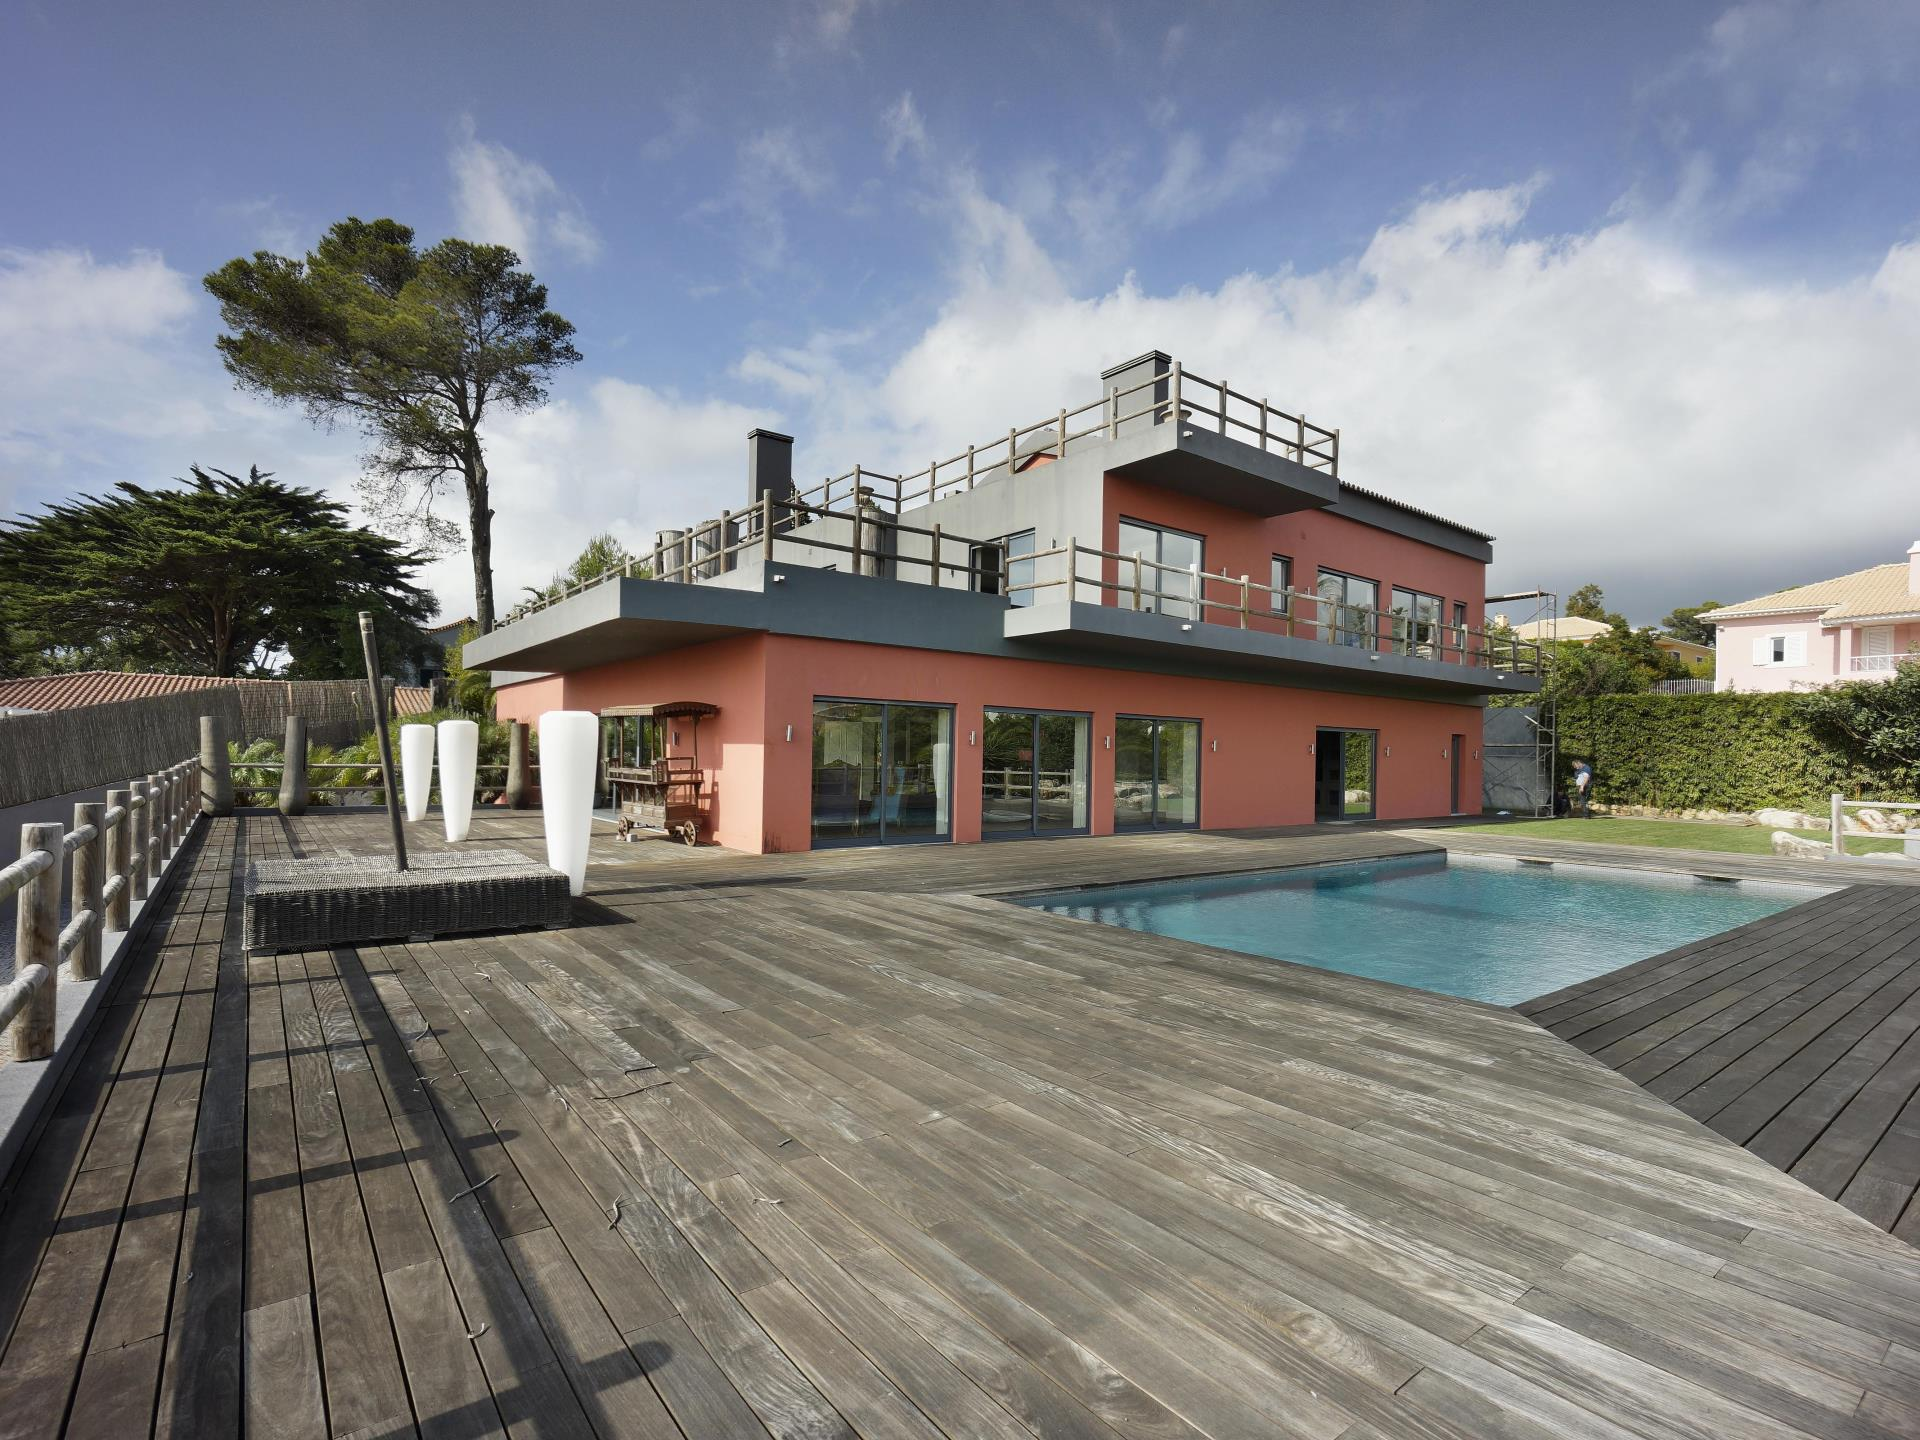 Single Family Home for Sale at House, 5 bedrooms, for Sale Cascais, Cascais, Lisboa Portugal